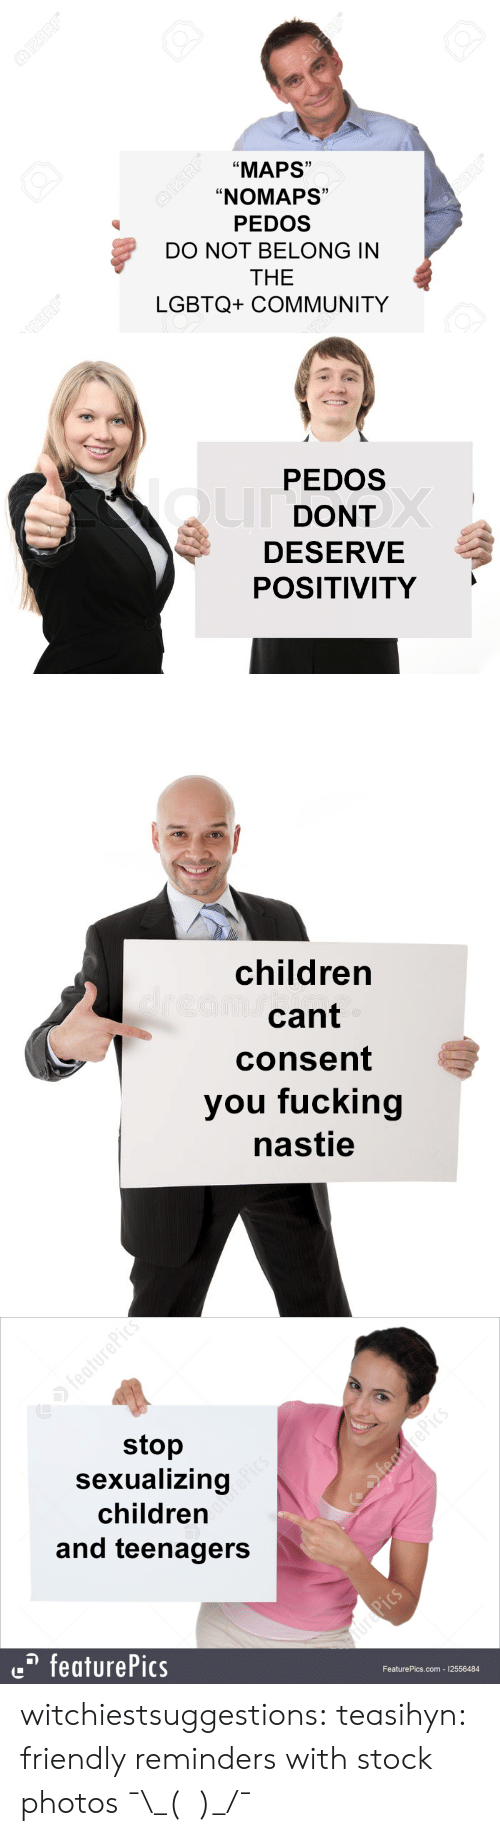 """reminders: """"MAPS""""  """"NOMAPS""""  PEDOS  DO NOT BELONG IN  THE  LGBTQ+ COMMUNITY  Ld  1)  C0  1   PEDOS  DONT  DESERVE  POSITIVITY   children  cant  consent  you fucking  nastie   stop  Sexualizing  children  and teenagers  featurePics  FeaturePics.com 12556484 witchiestsuggestions: teasihyn: friendly reminders with stock photos  ¯\_(ツ)_/¯"""